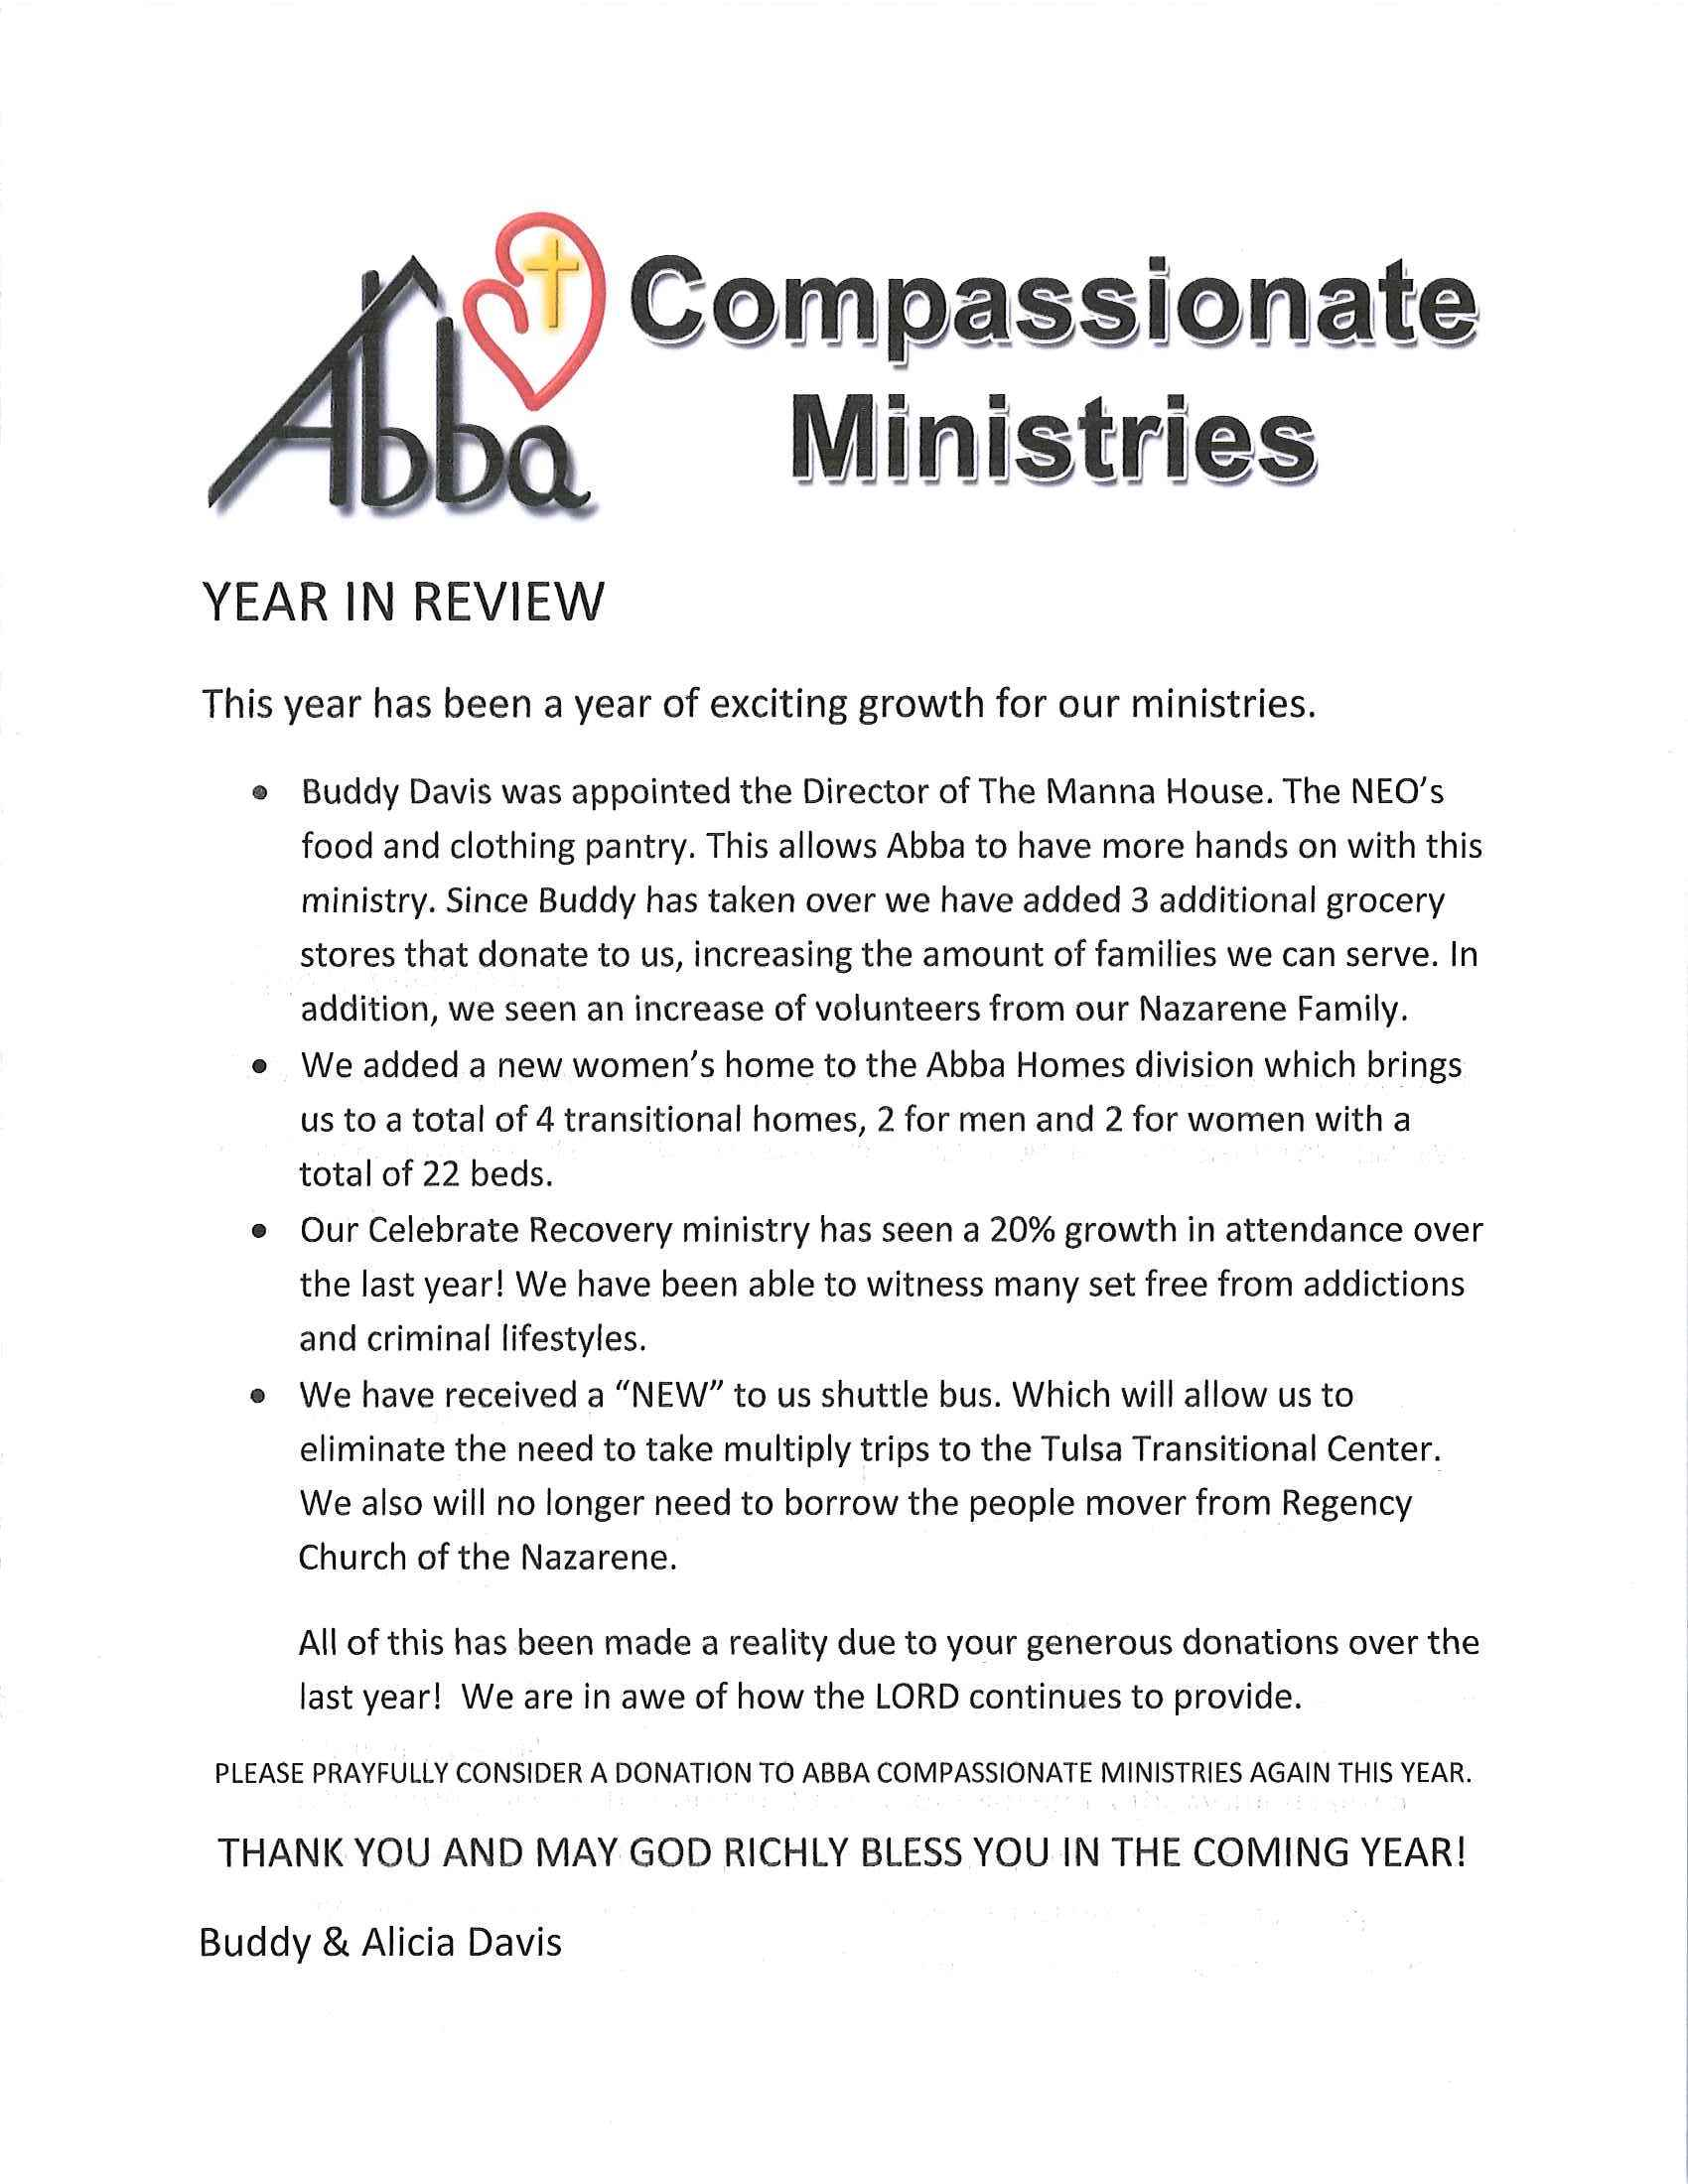 Abba Compassionate Ministries Year in Review 2017